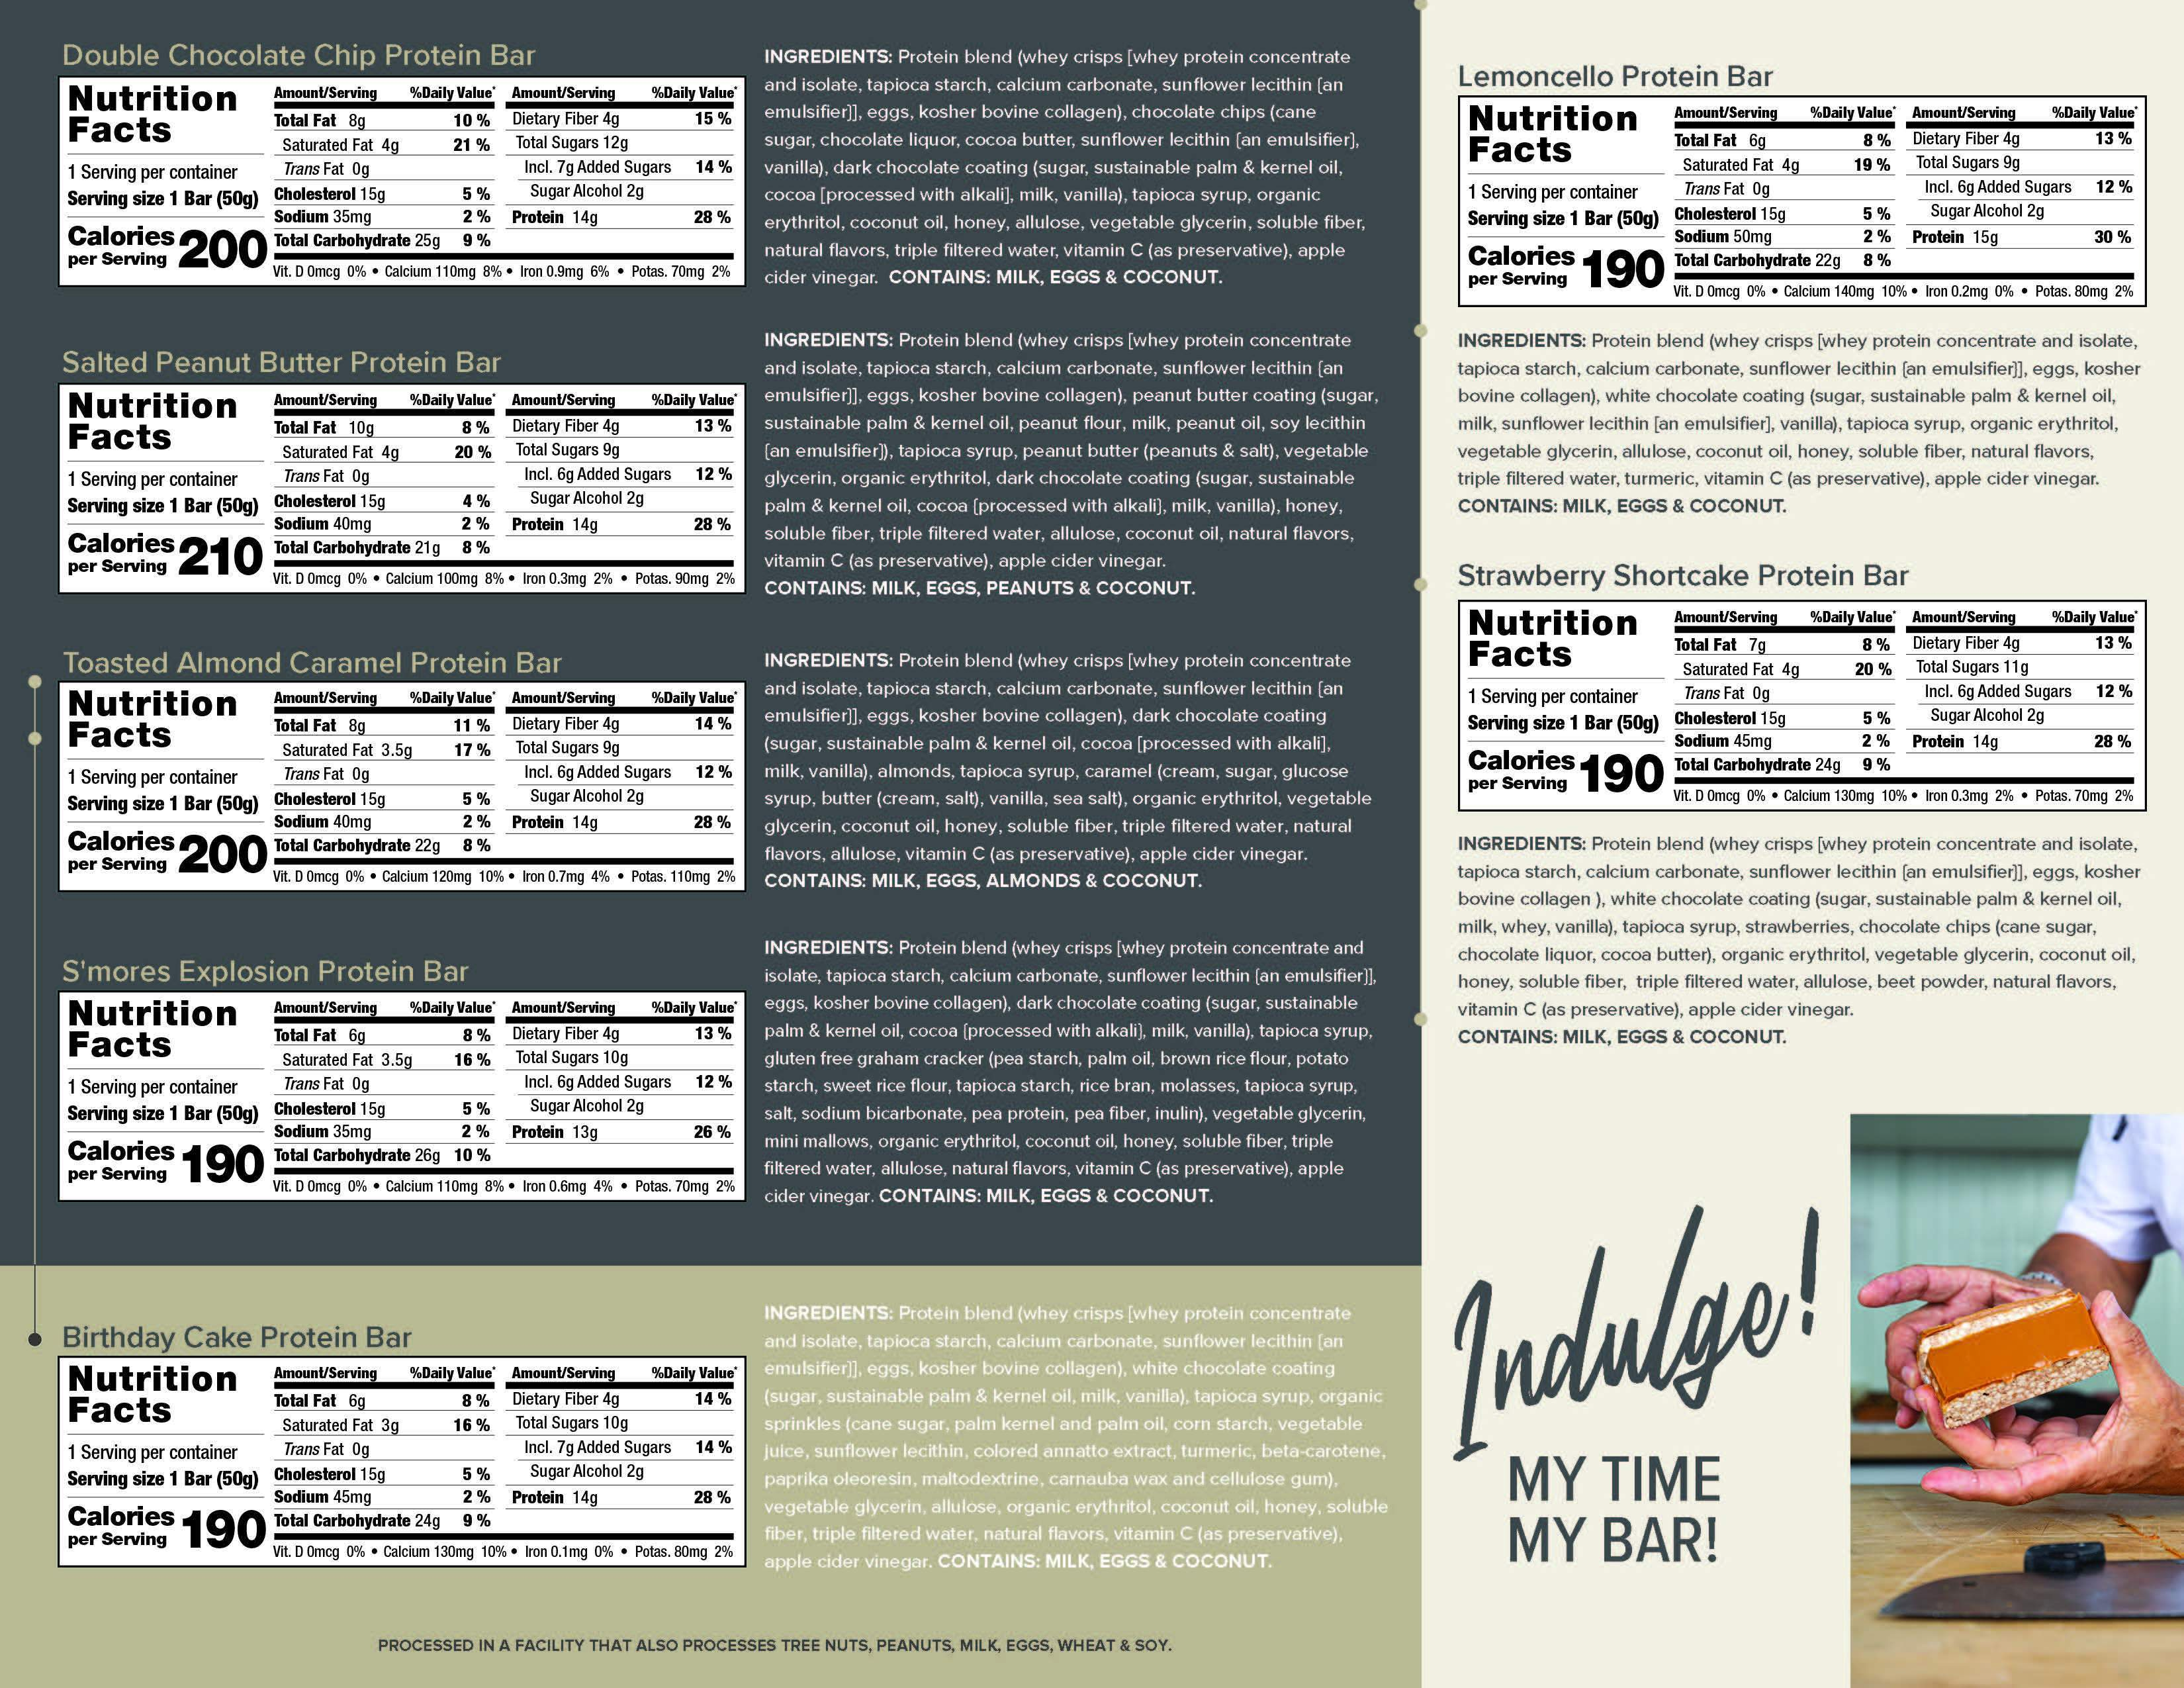 The Gourmet Sampler nutrition facts